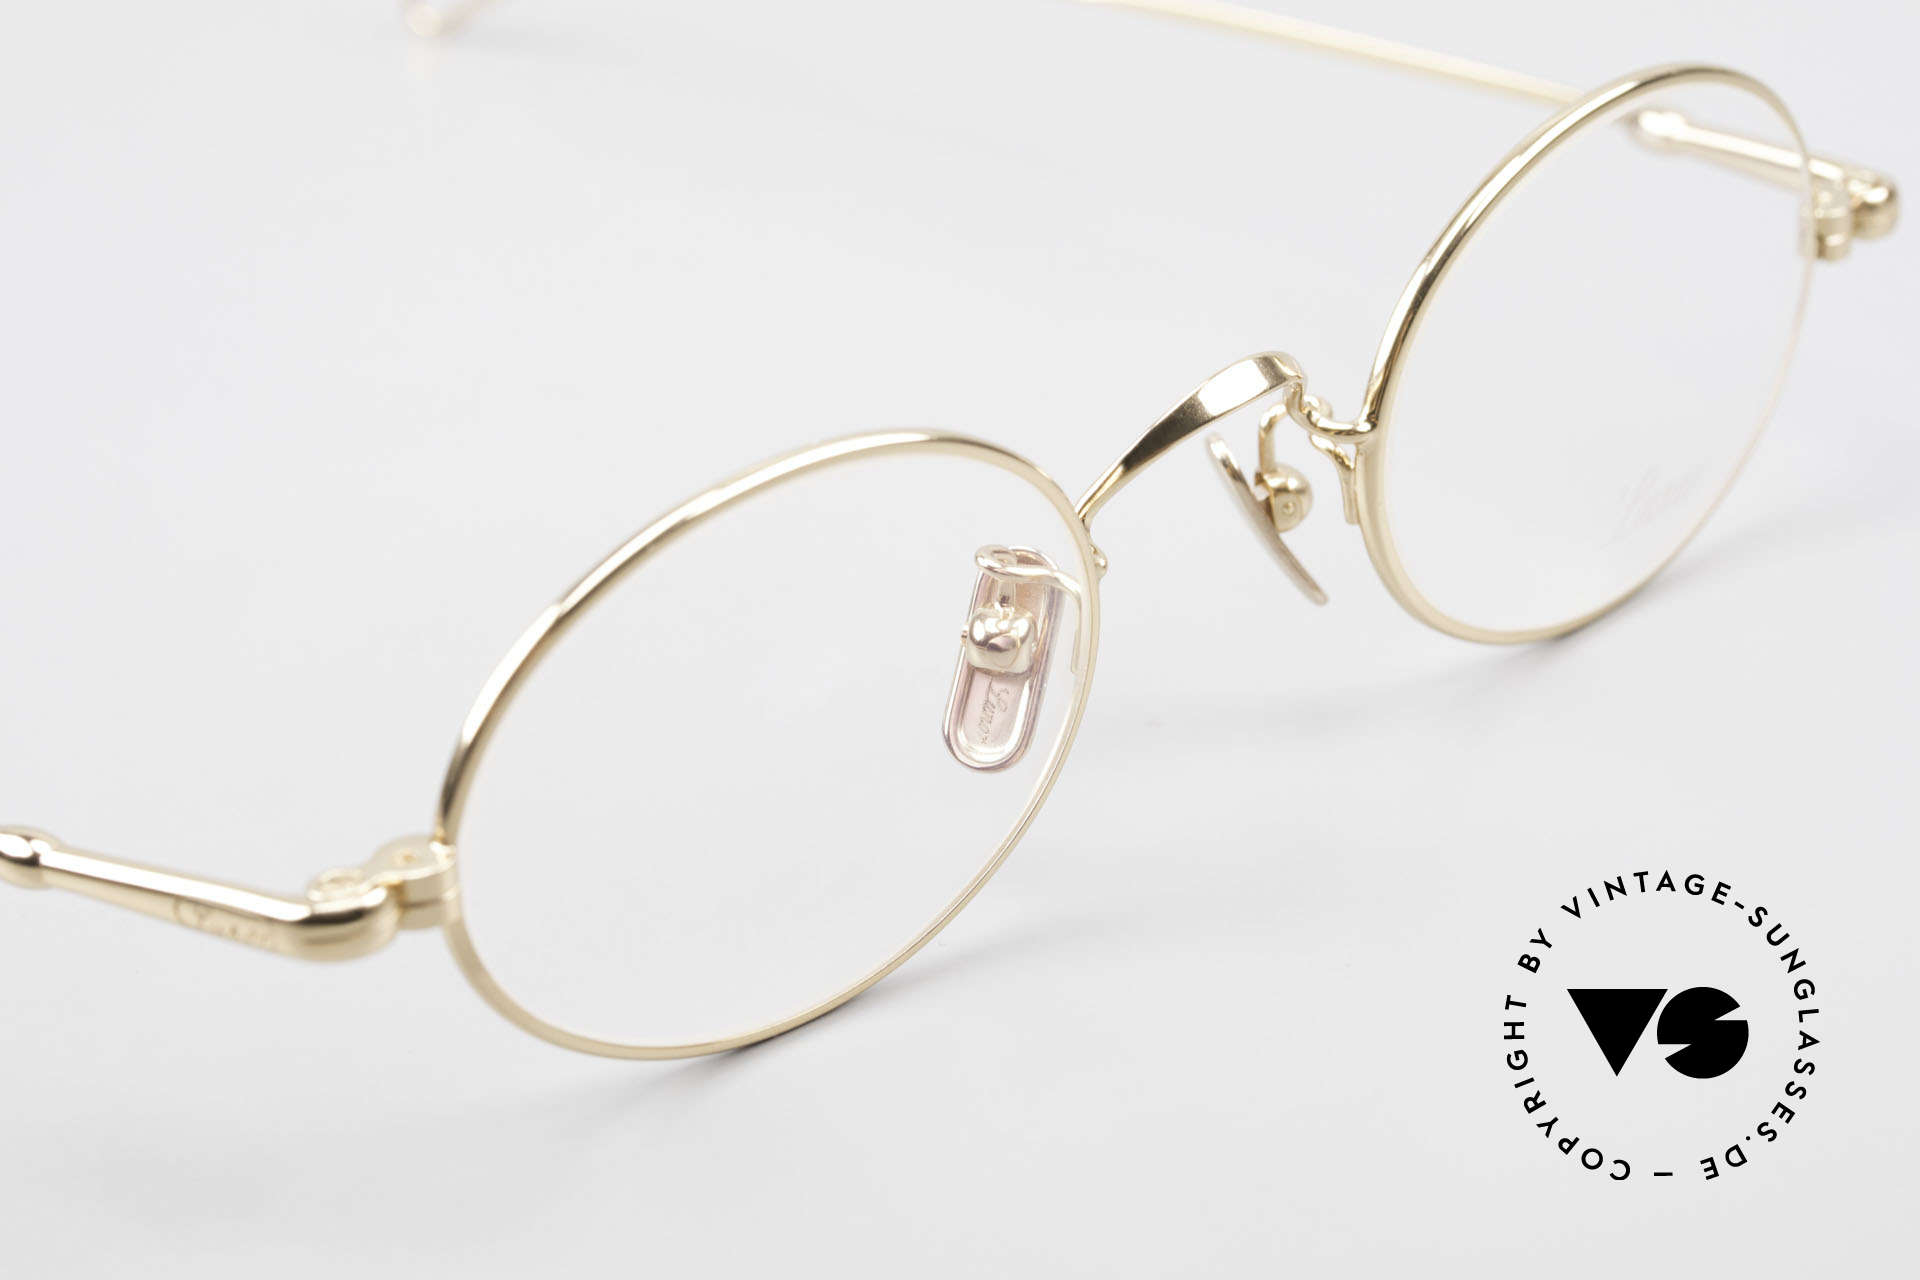 Lunor V 100 Oval Eyeglasses Gold Plated, thus, we decided to take it into our vintage collection, Made for Men and Women